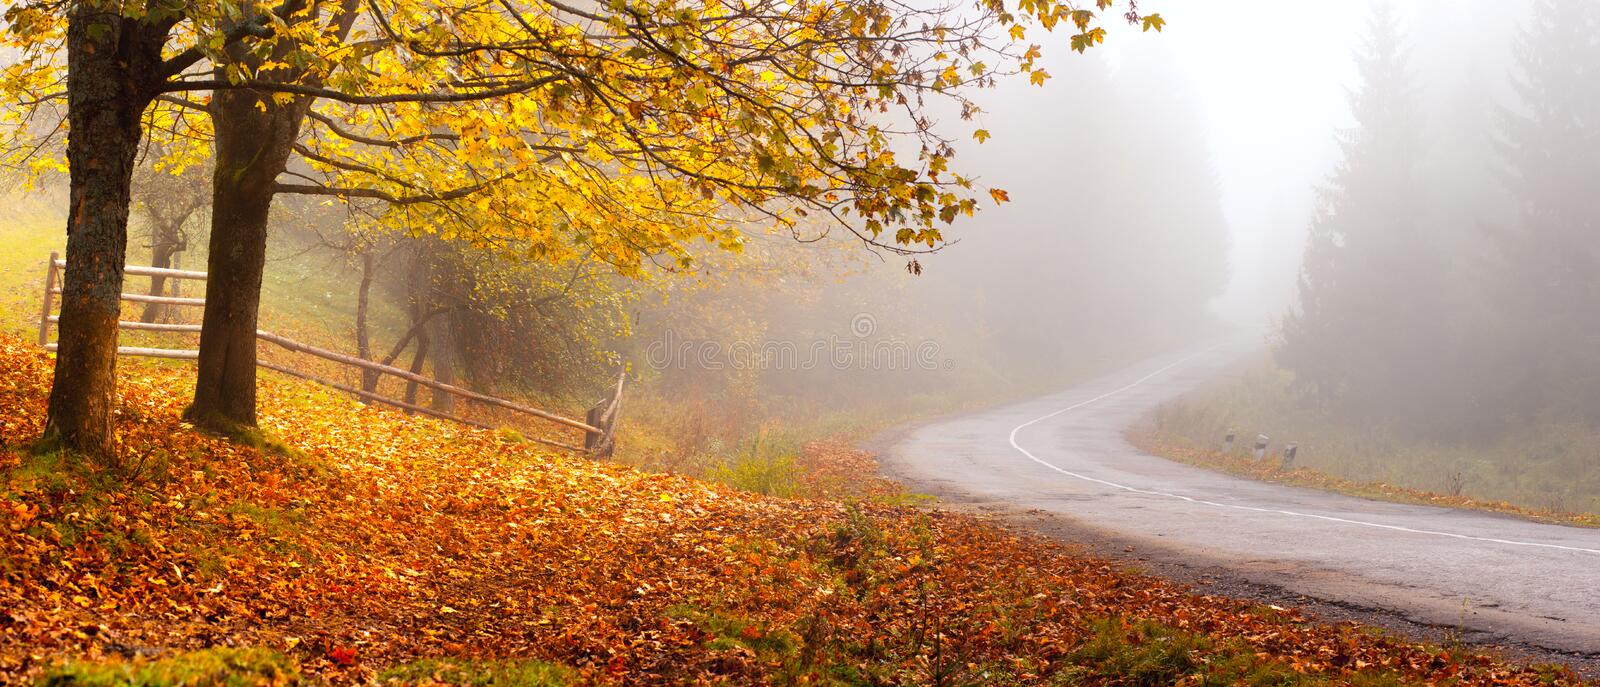 Autumn road. Autumnal landscape with mist over road. Fall nature royalty free stock images